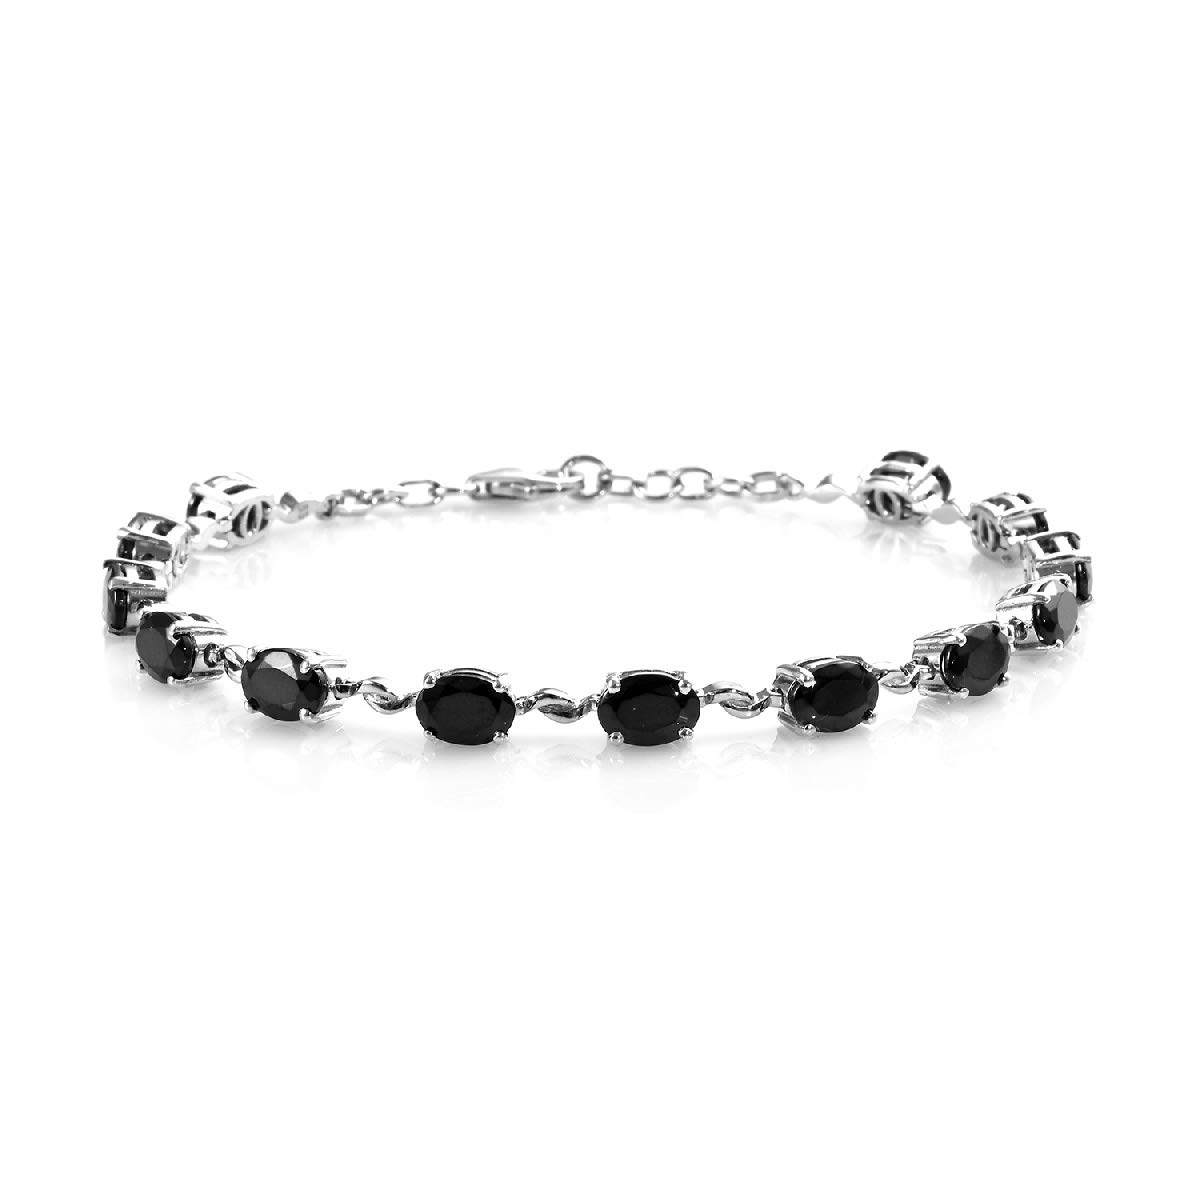 Tennis Bracelet 925 Sterling Silver Platinum Plated Oval Shungite Jewelry for Women Size 8'' Ct 5 by Shop LC Delivering Joy